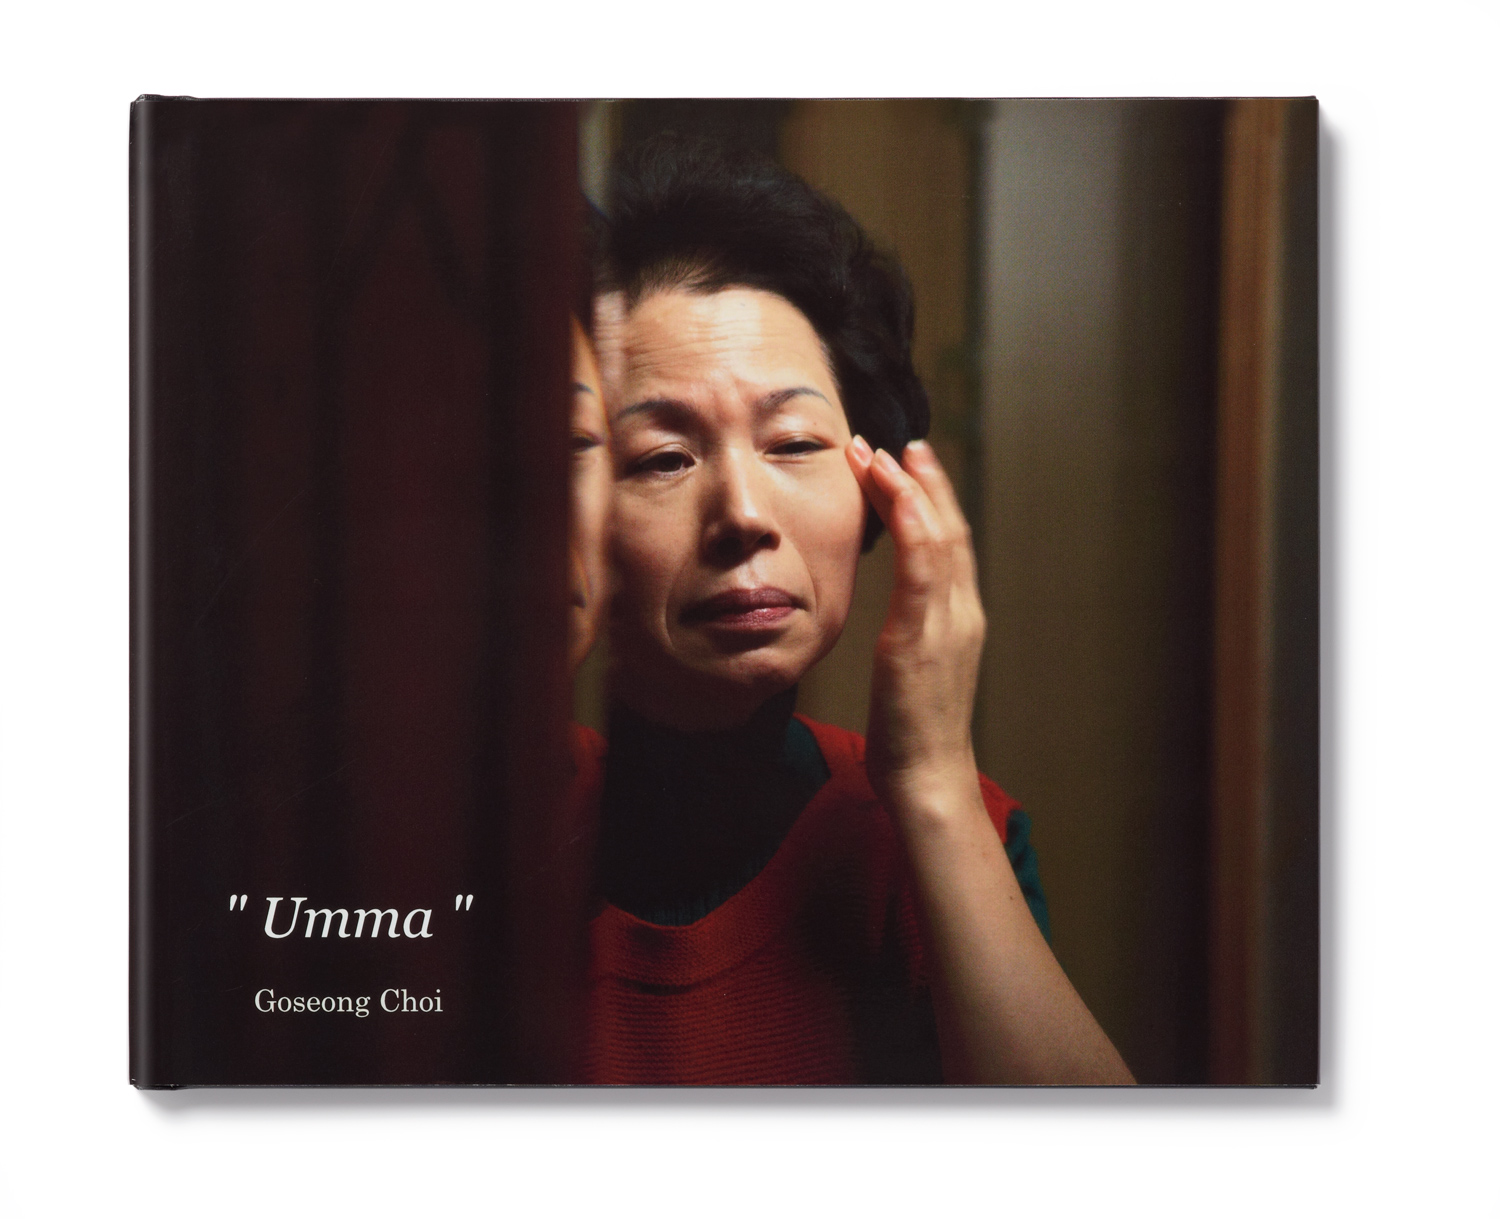 The winner in the student category was                                Goseong Choi's book Umma.